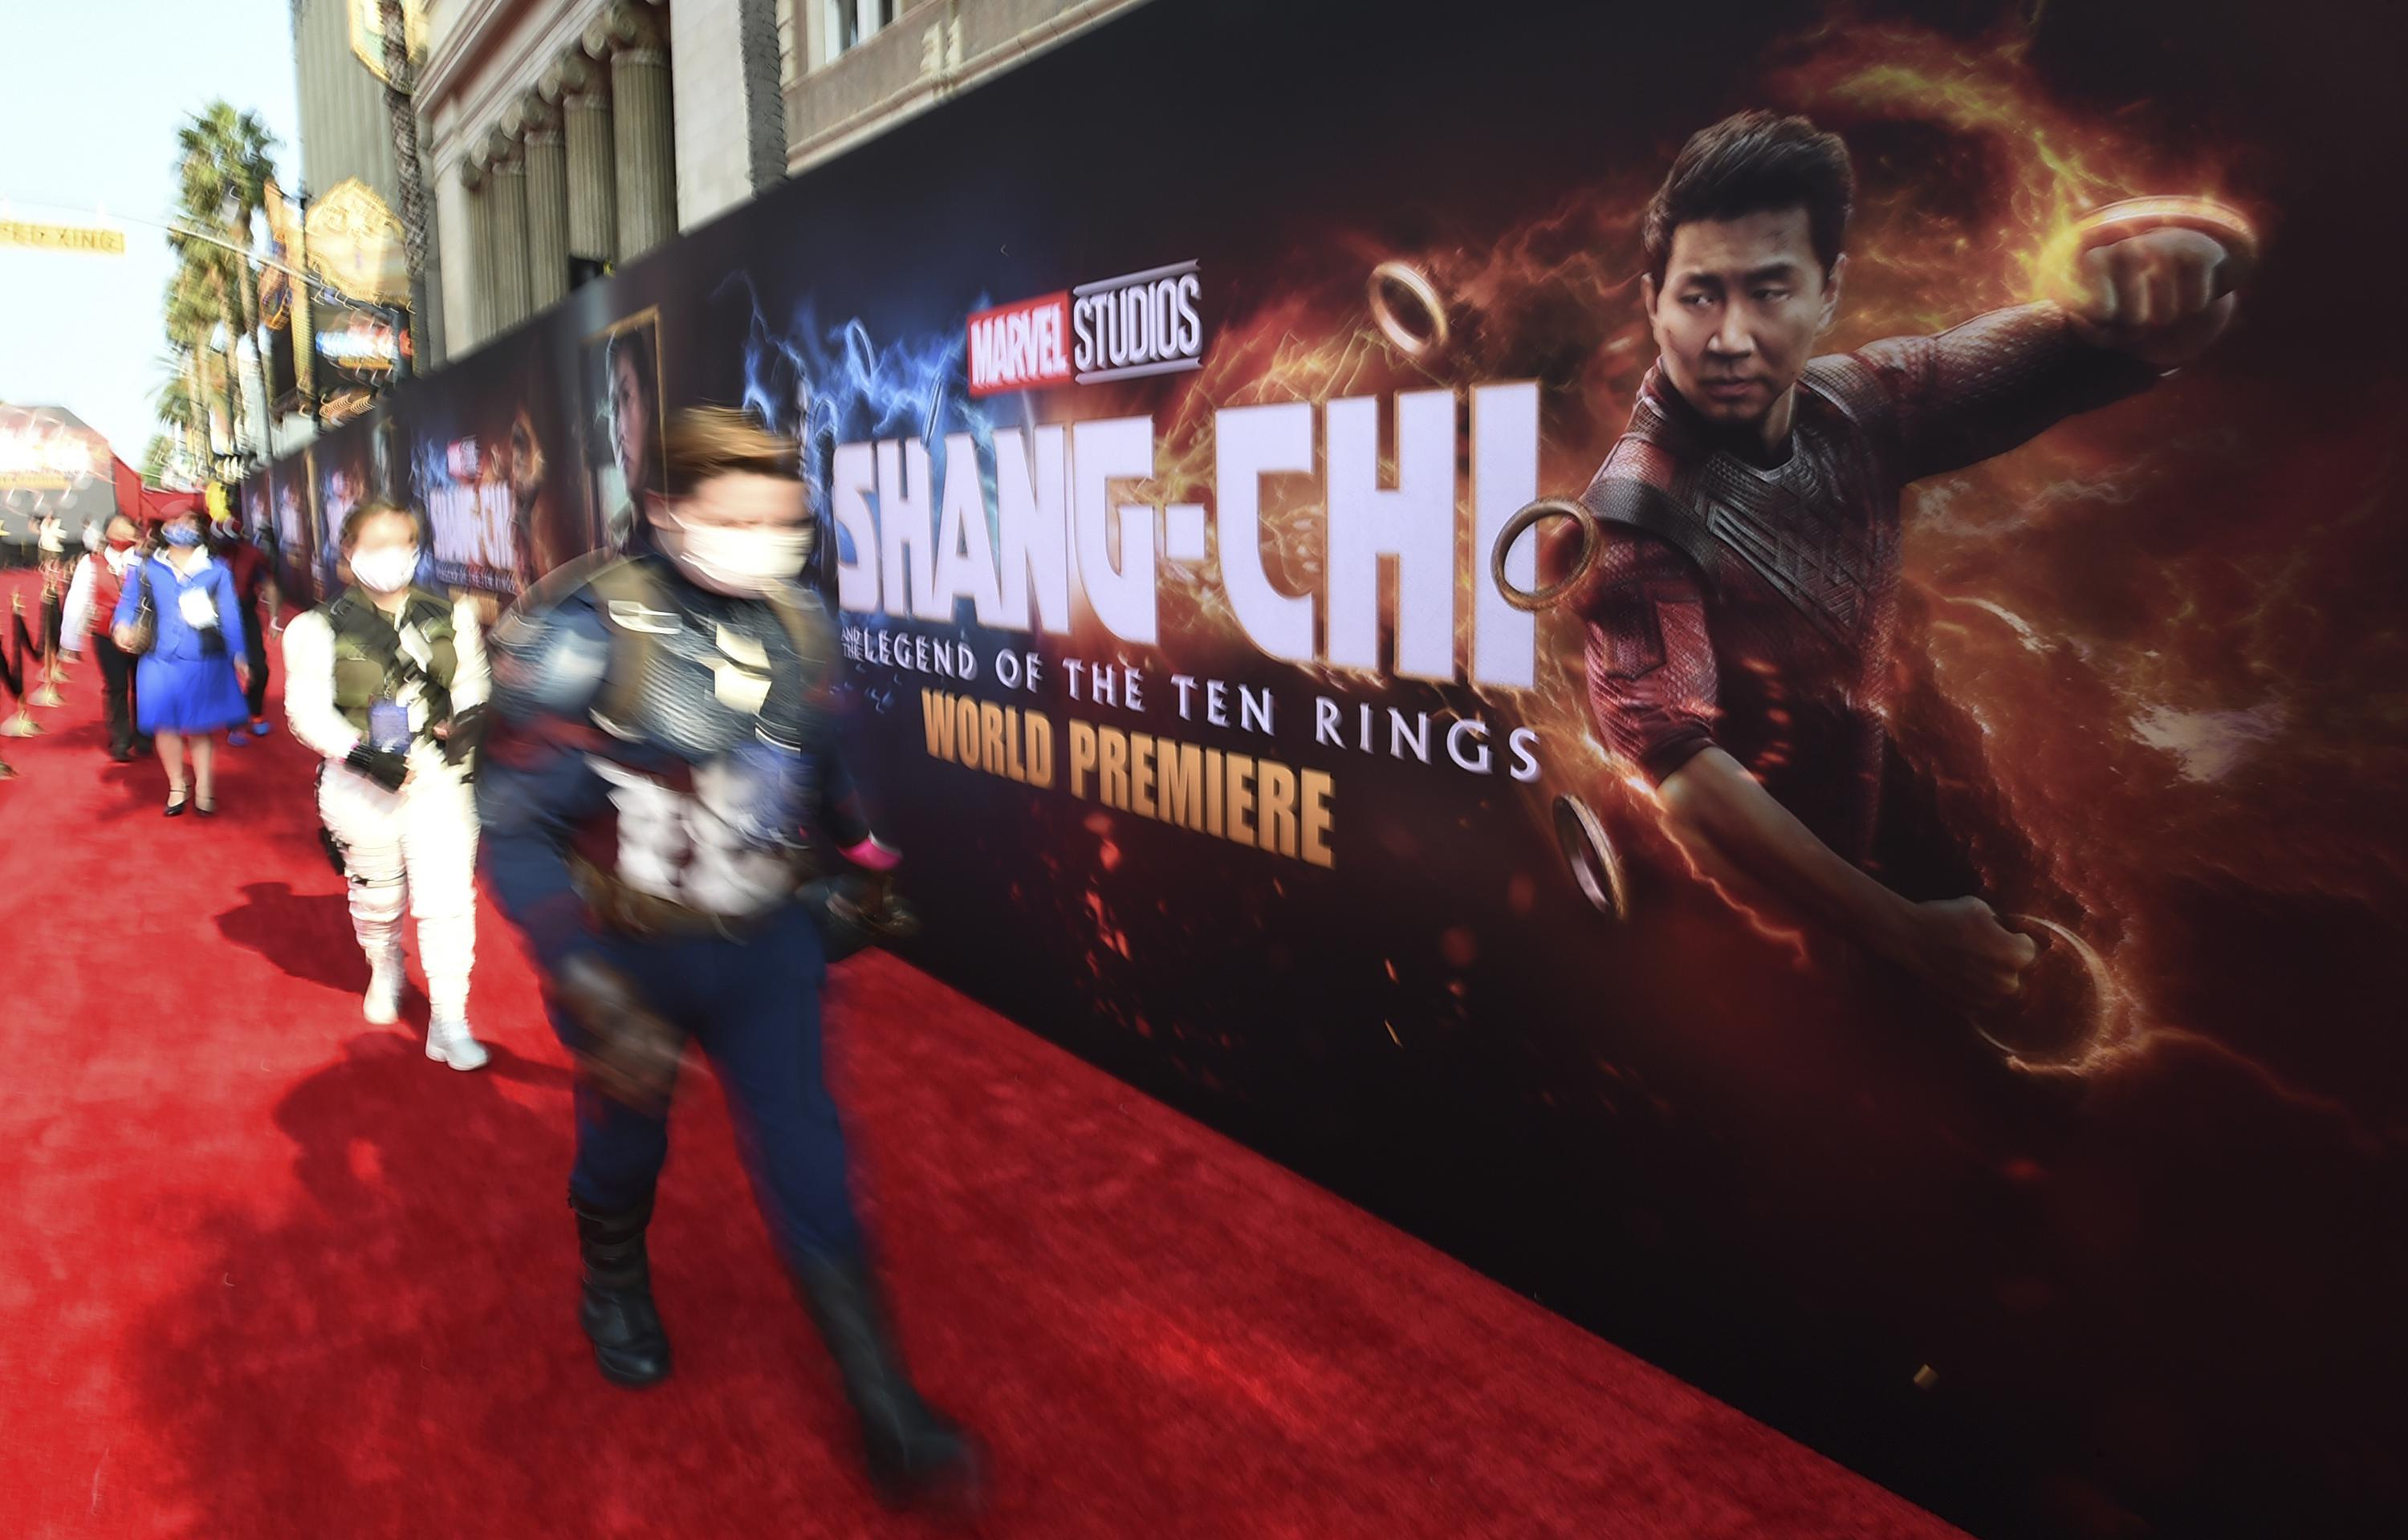 apnews.com: Marvel's 'Shang-Chi' jabs, flips Asian American film cliches